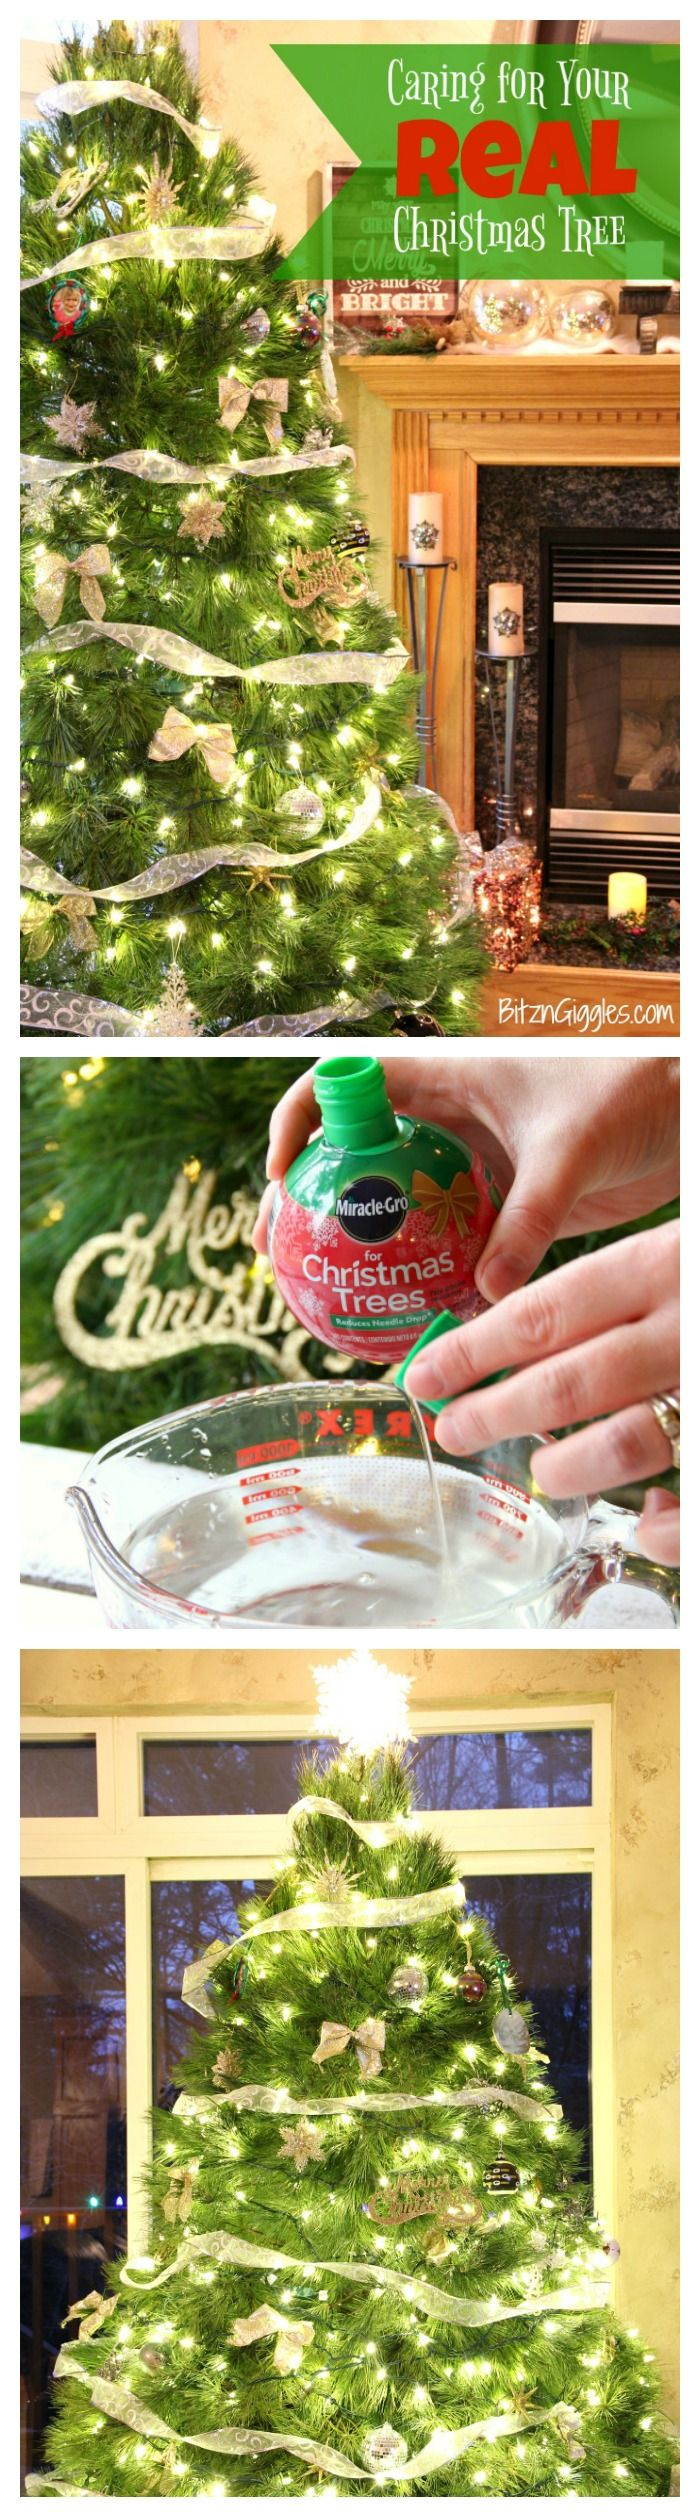 Caring for Your Real Christmas Tree - Tips on caring for a natural Christmas tree so it lasts all season long! #BestTreeEver #sponsored @MiracleGro